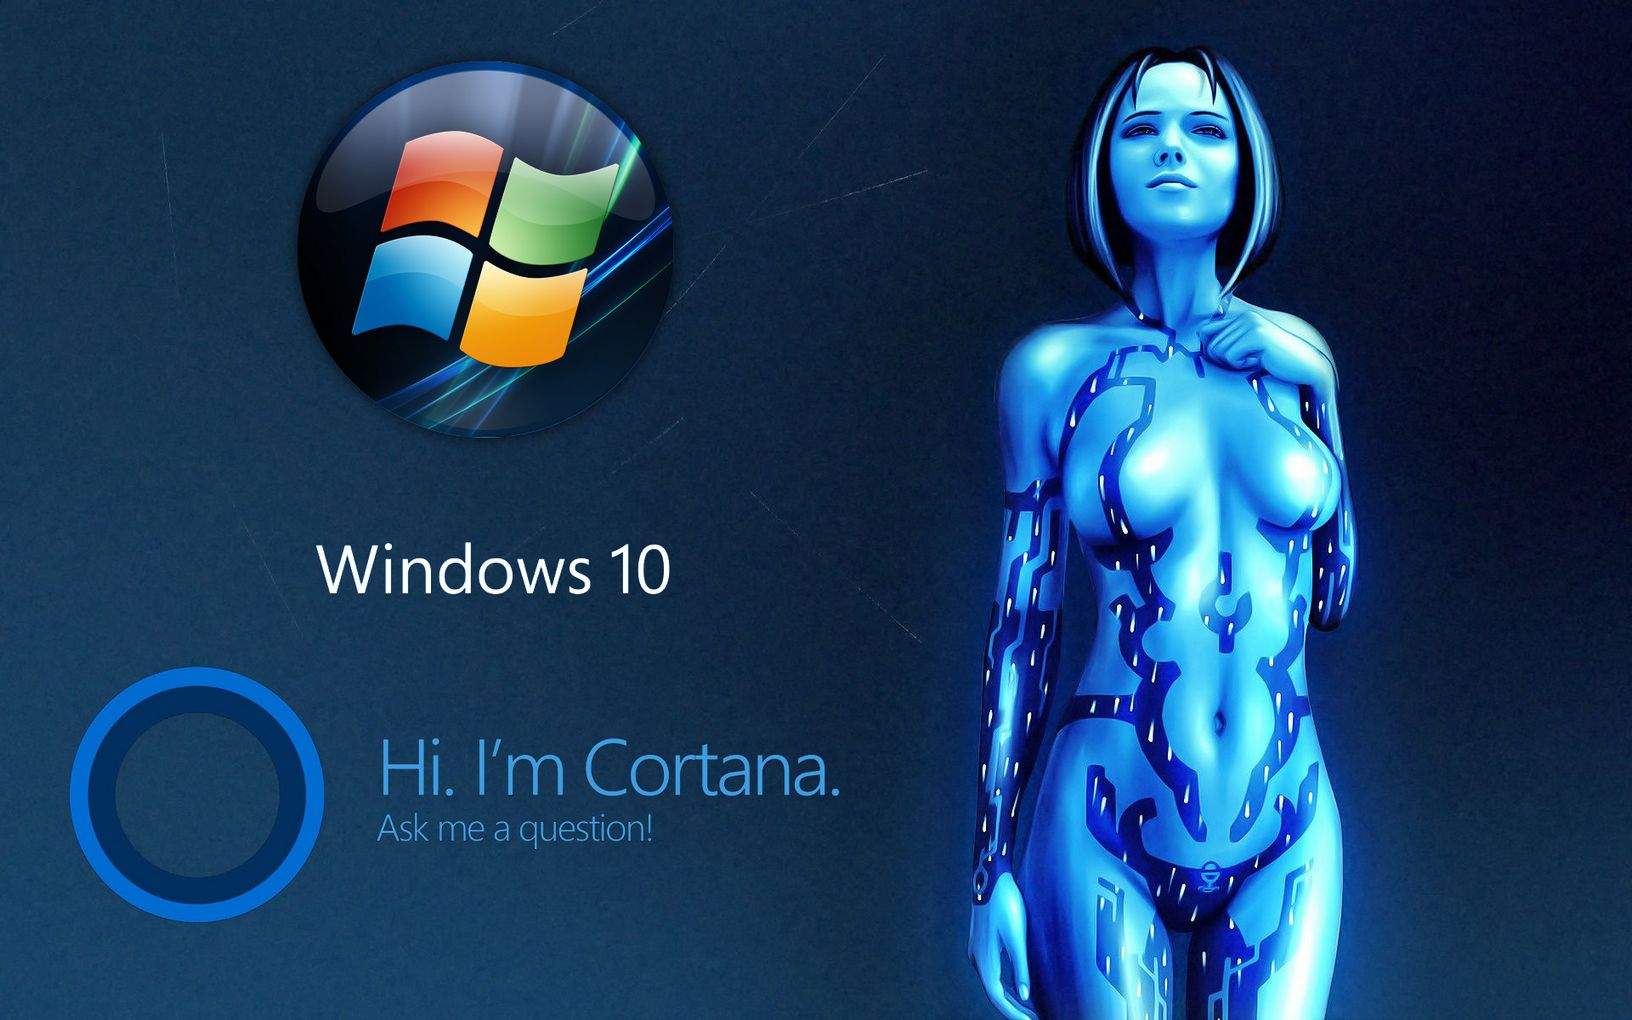 Cosa chiedere a Cortana L'assistente virtuale di windows 10